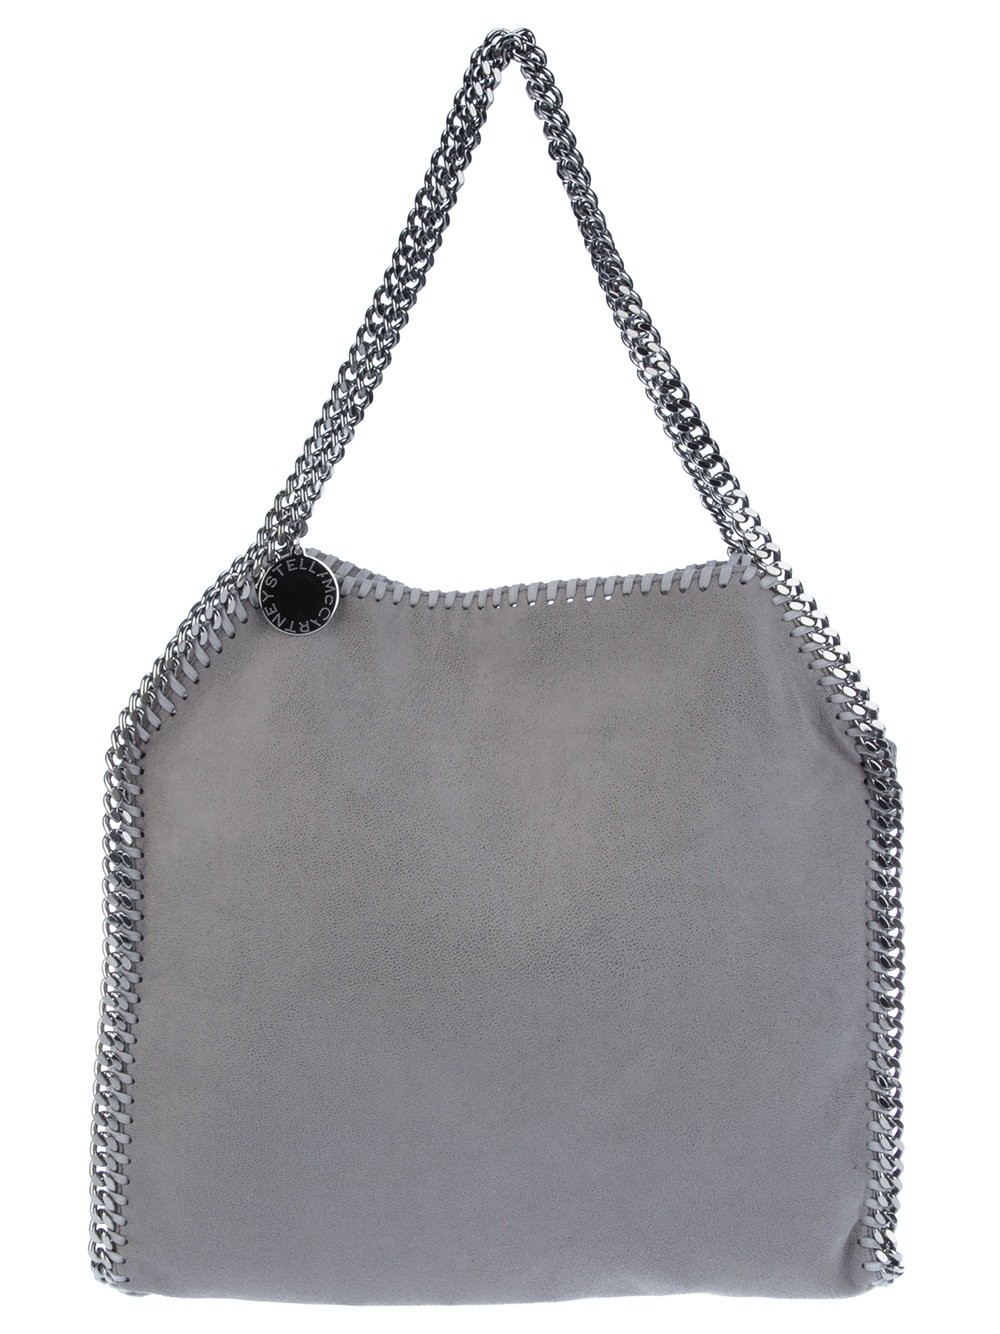 Stella Mccartney Falabella Two Chain Bag Bags Di